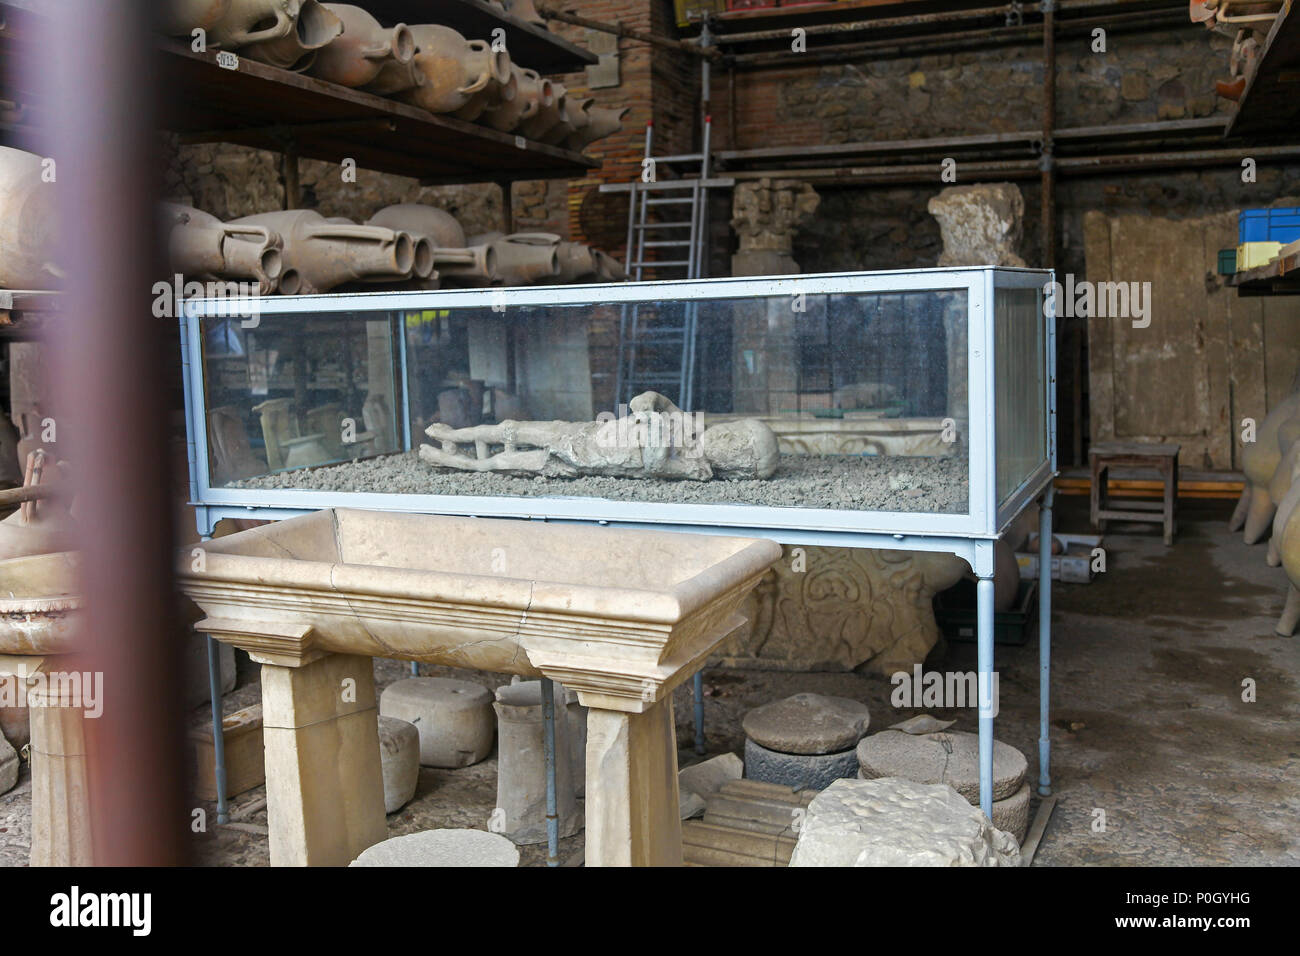 Plaster cast of a small child in a glass case, from the eruption of Vesuvius in AD 79 at the Pompeii Archaeological site, Pompeii, Campania, Italy, - Stock Image